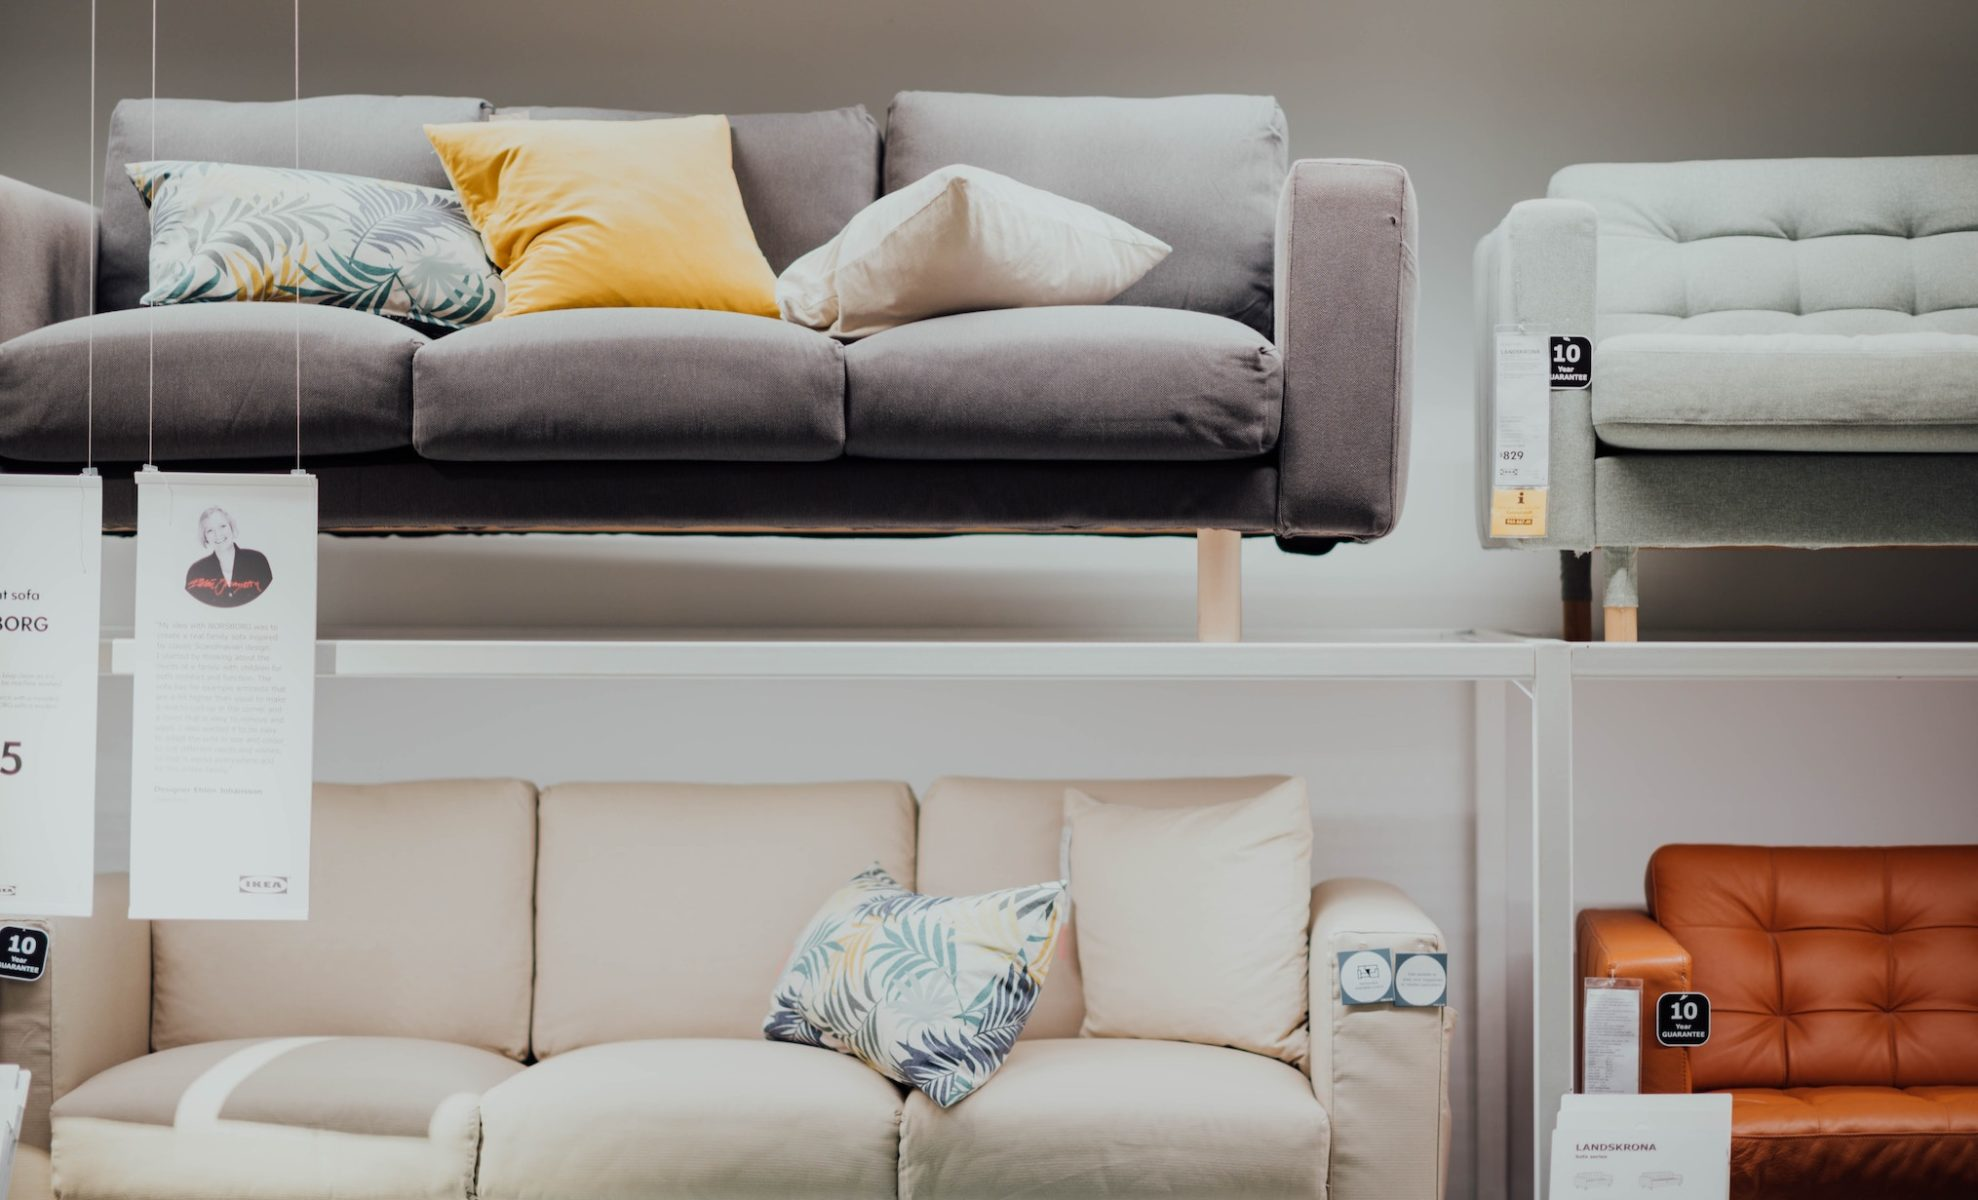 Furniture Shopping | First Apartment Checklist